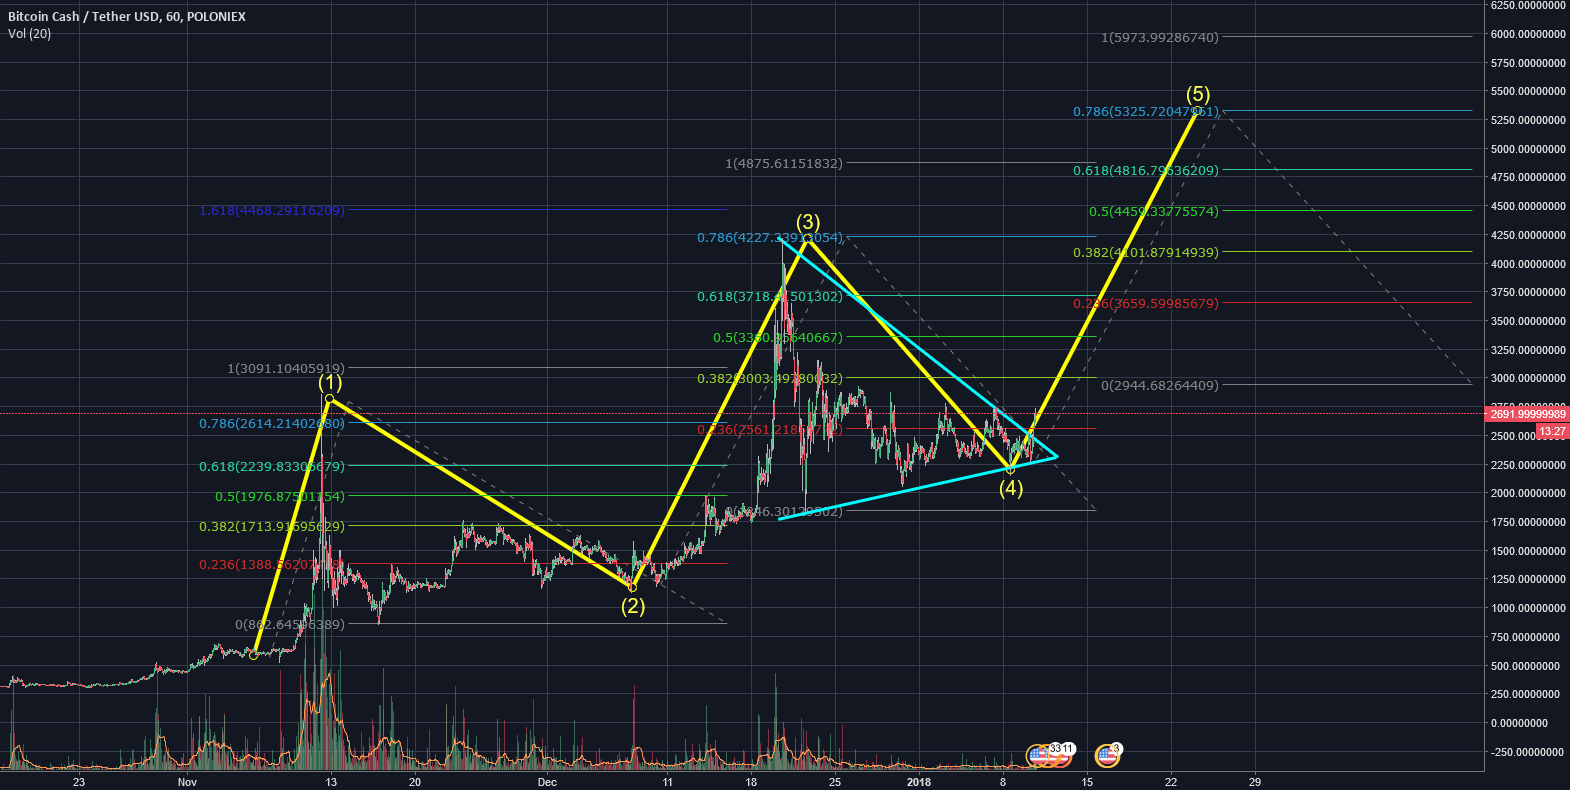 BCH Possible Breakout to 5k+ 130% Gain - Fib Based